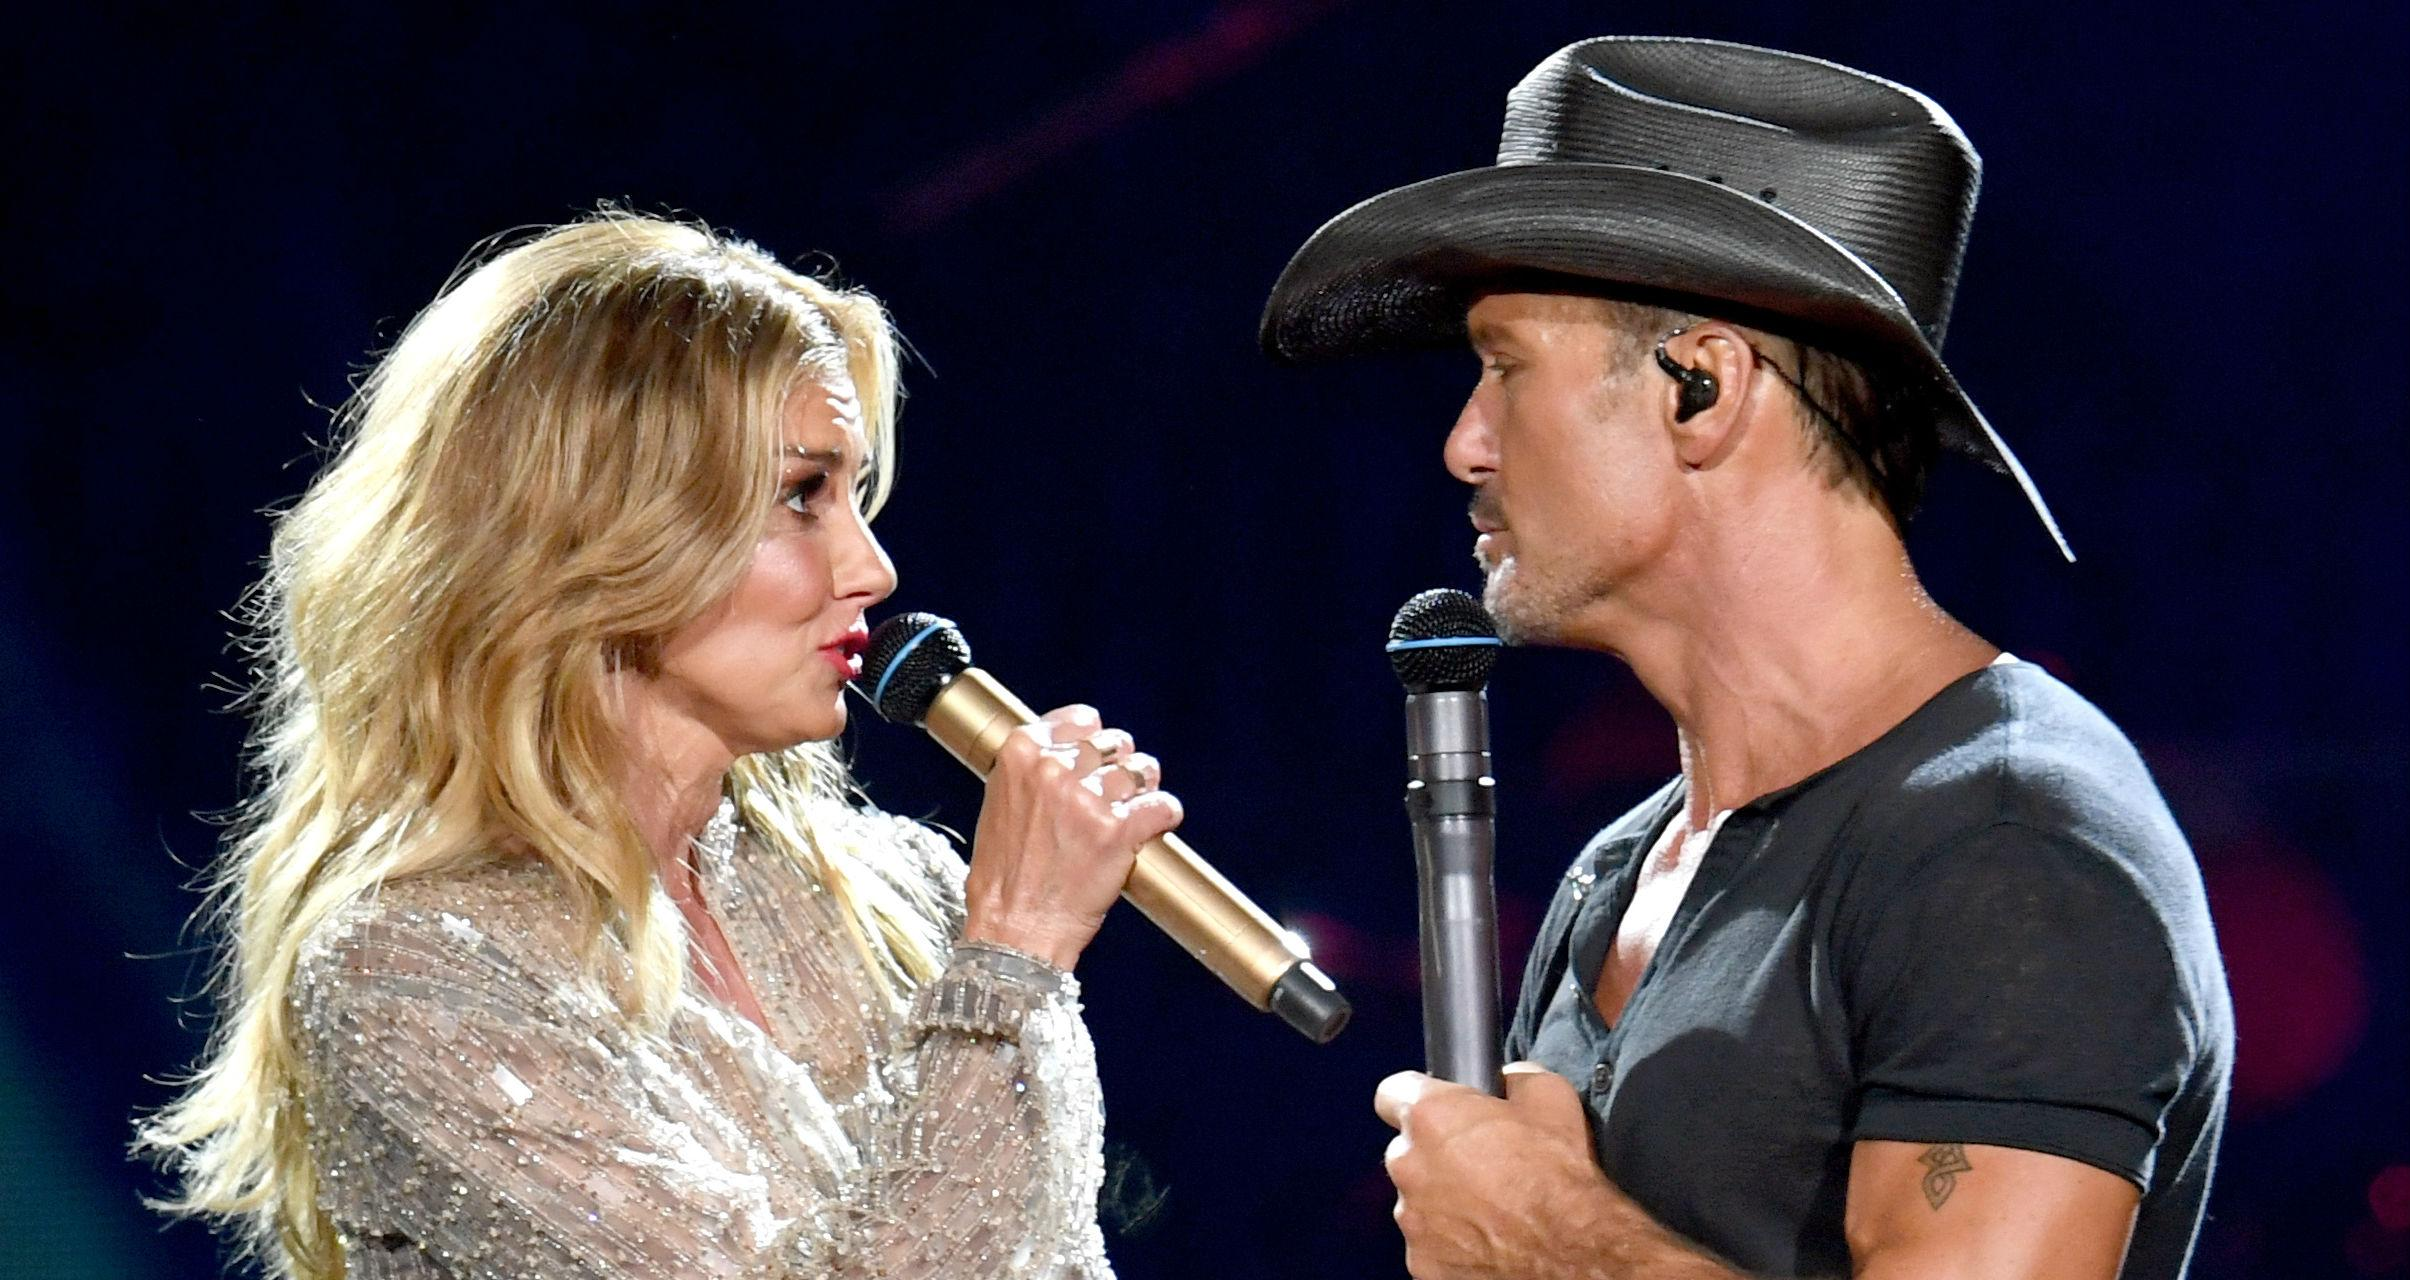 Inside Tim McGraw and Faith Hill's Showtime Concert Special